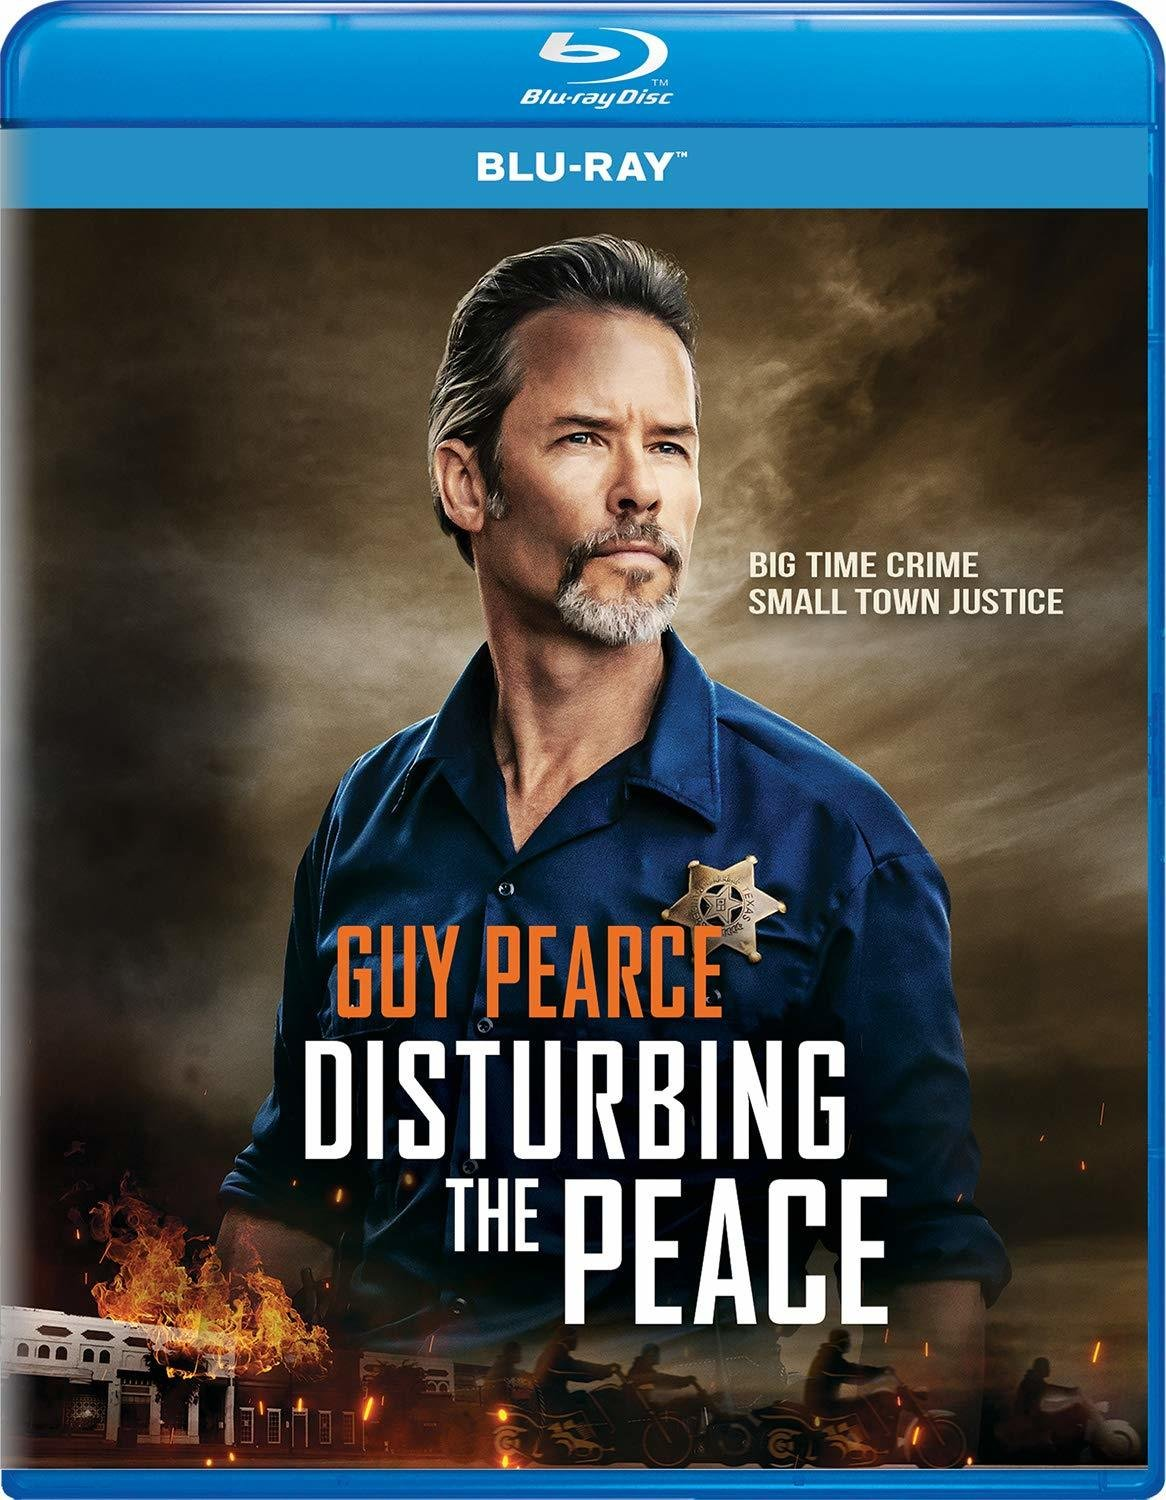 Disturbing the Peace (2020) poster image